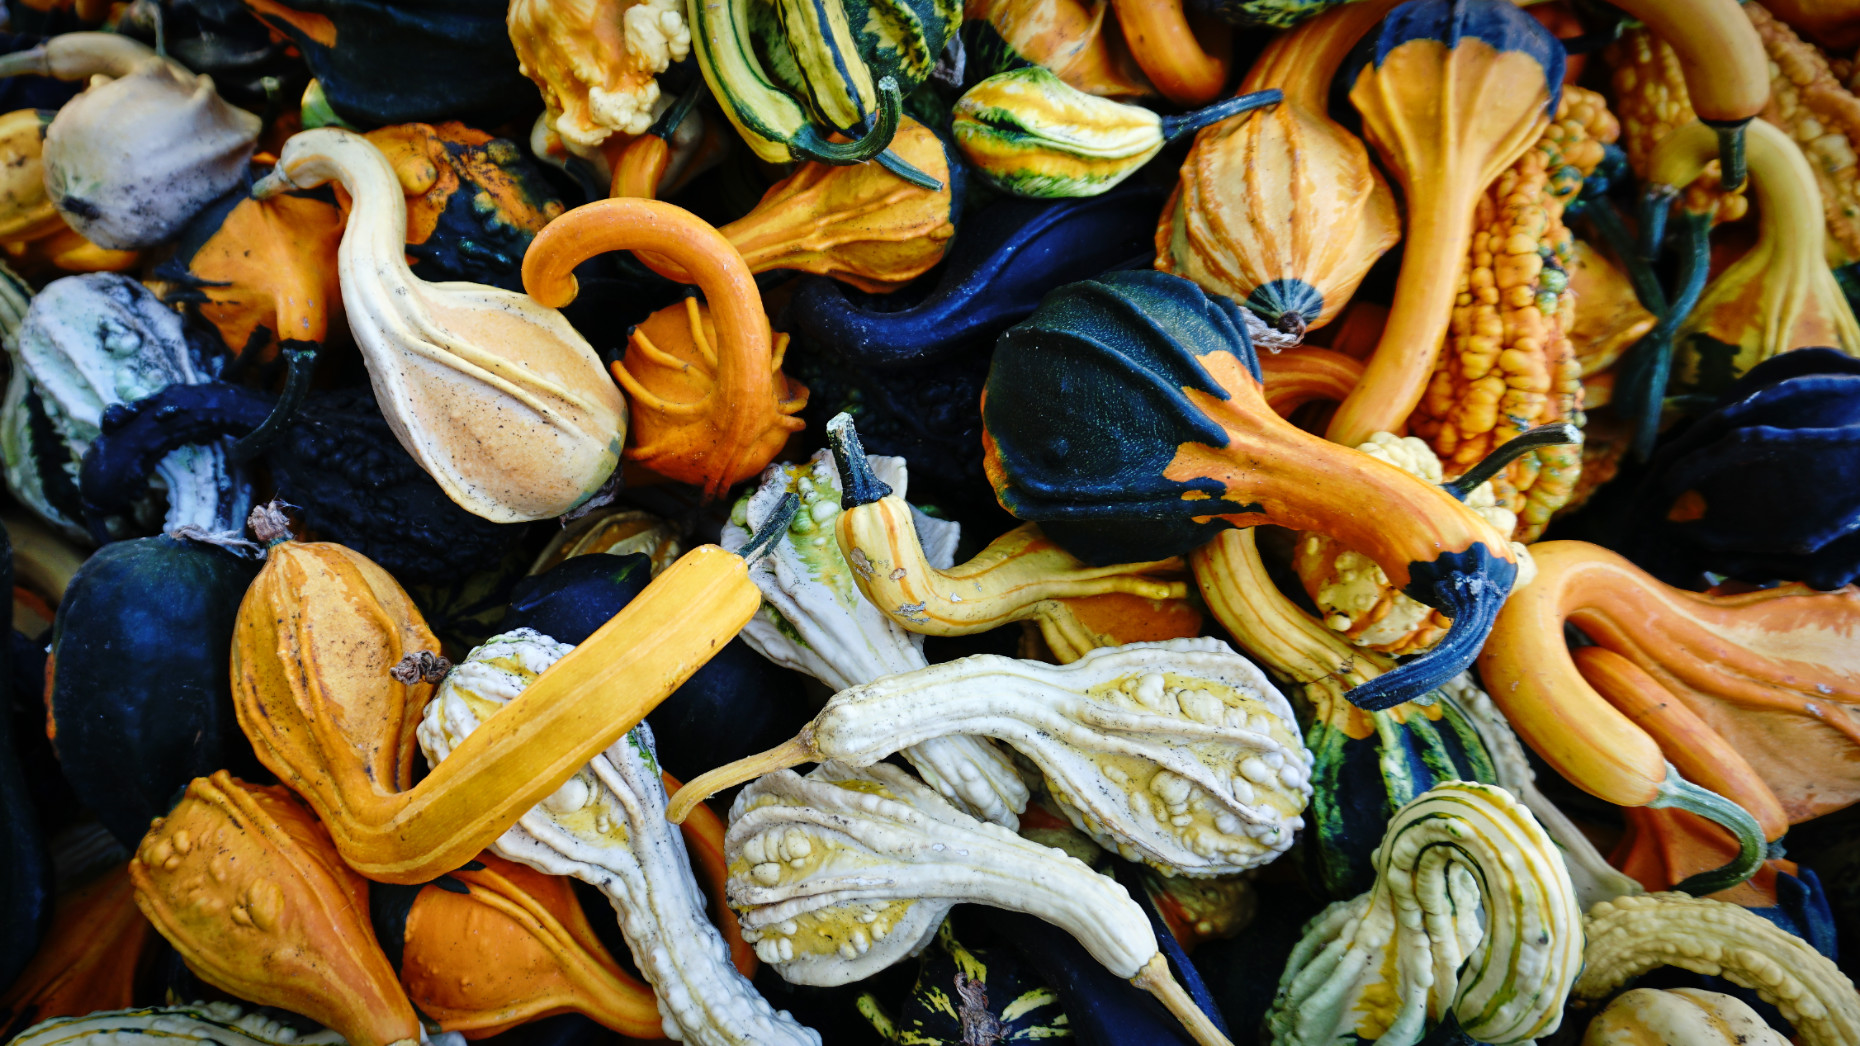 Squash at Davison Country Orchards, Vernon, Canada (Image: Lottie Gross)